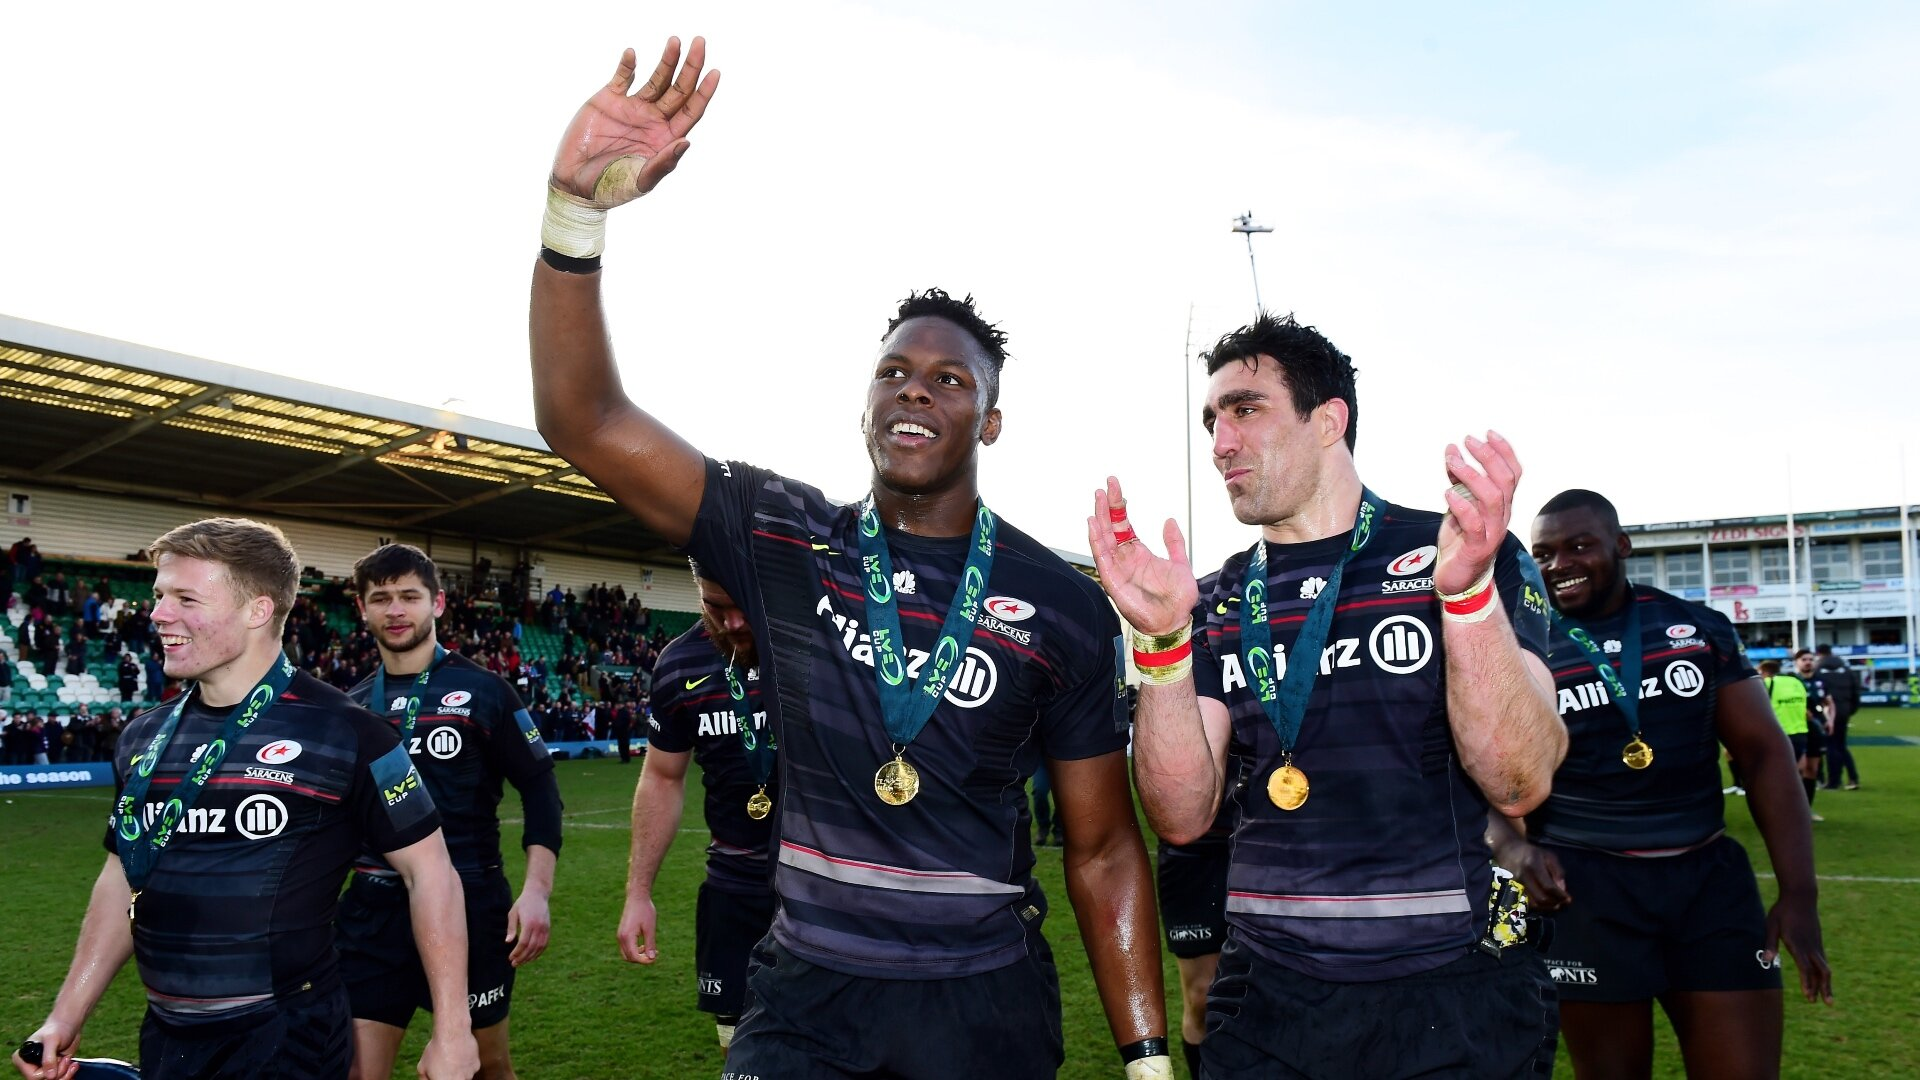 'In spite of everything the past turbulent year, Saracens is a club that does a lot of stuff right'